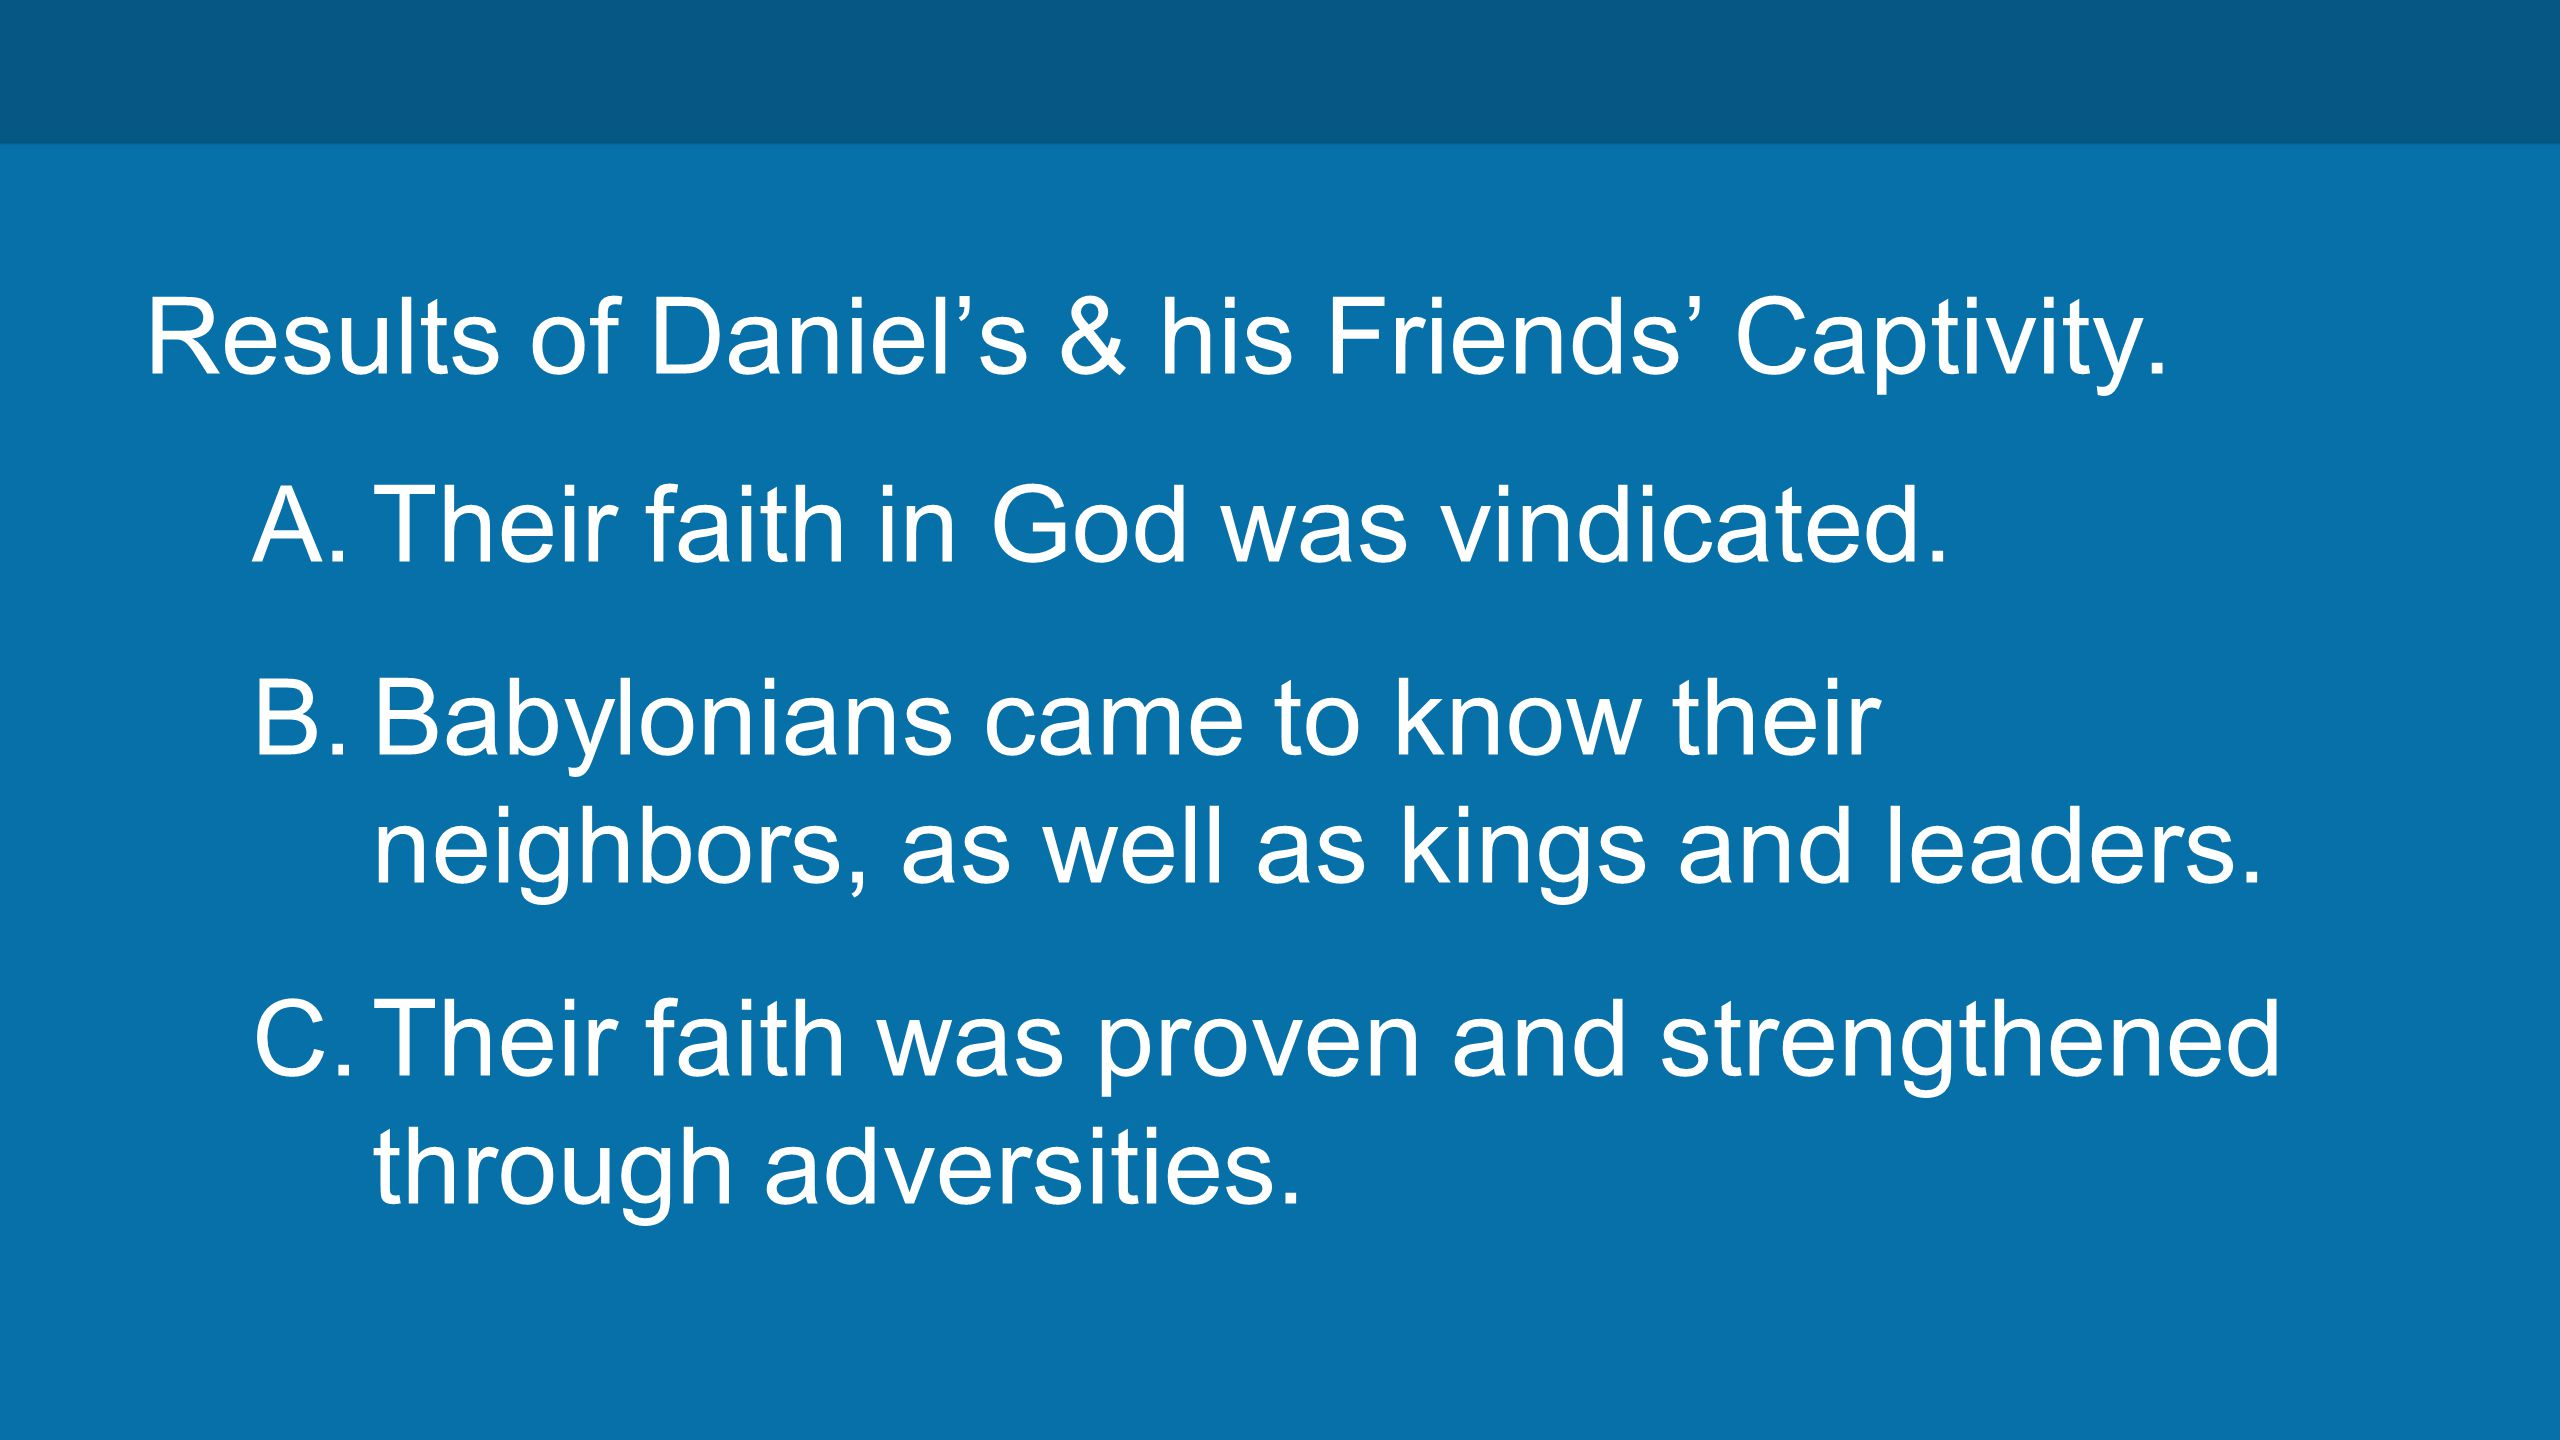 Results of Daniel's & his Friends' Captivity. A. Their faith in God was vindicated.